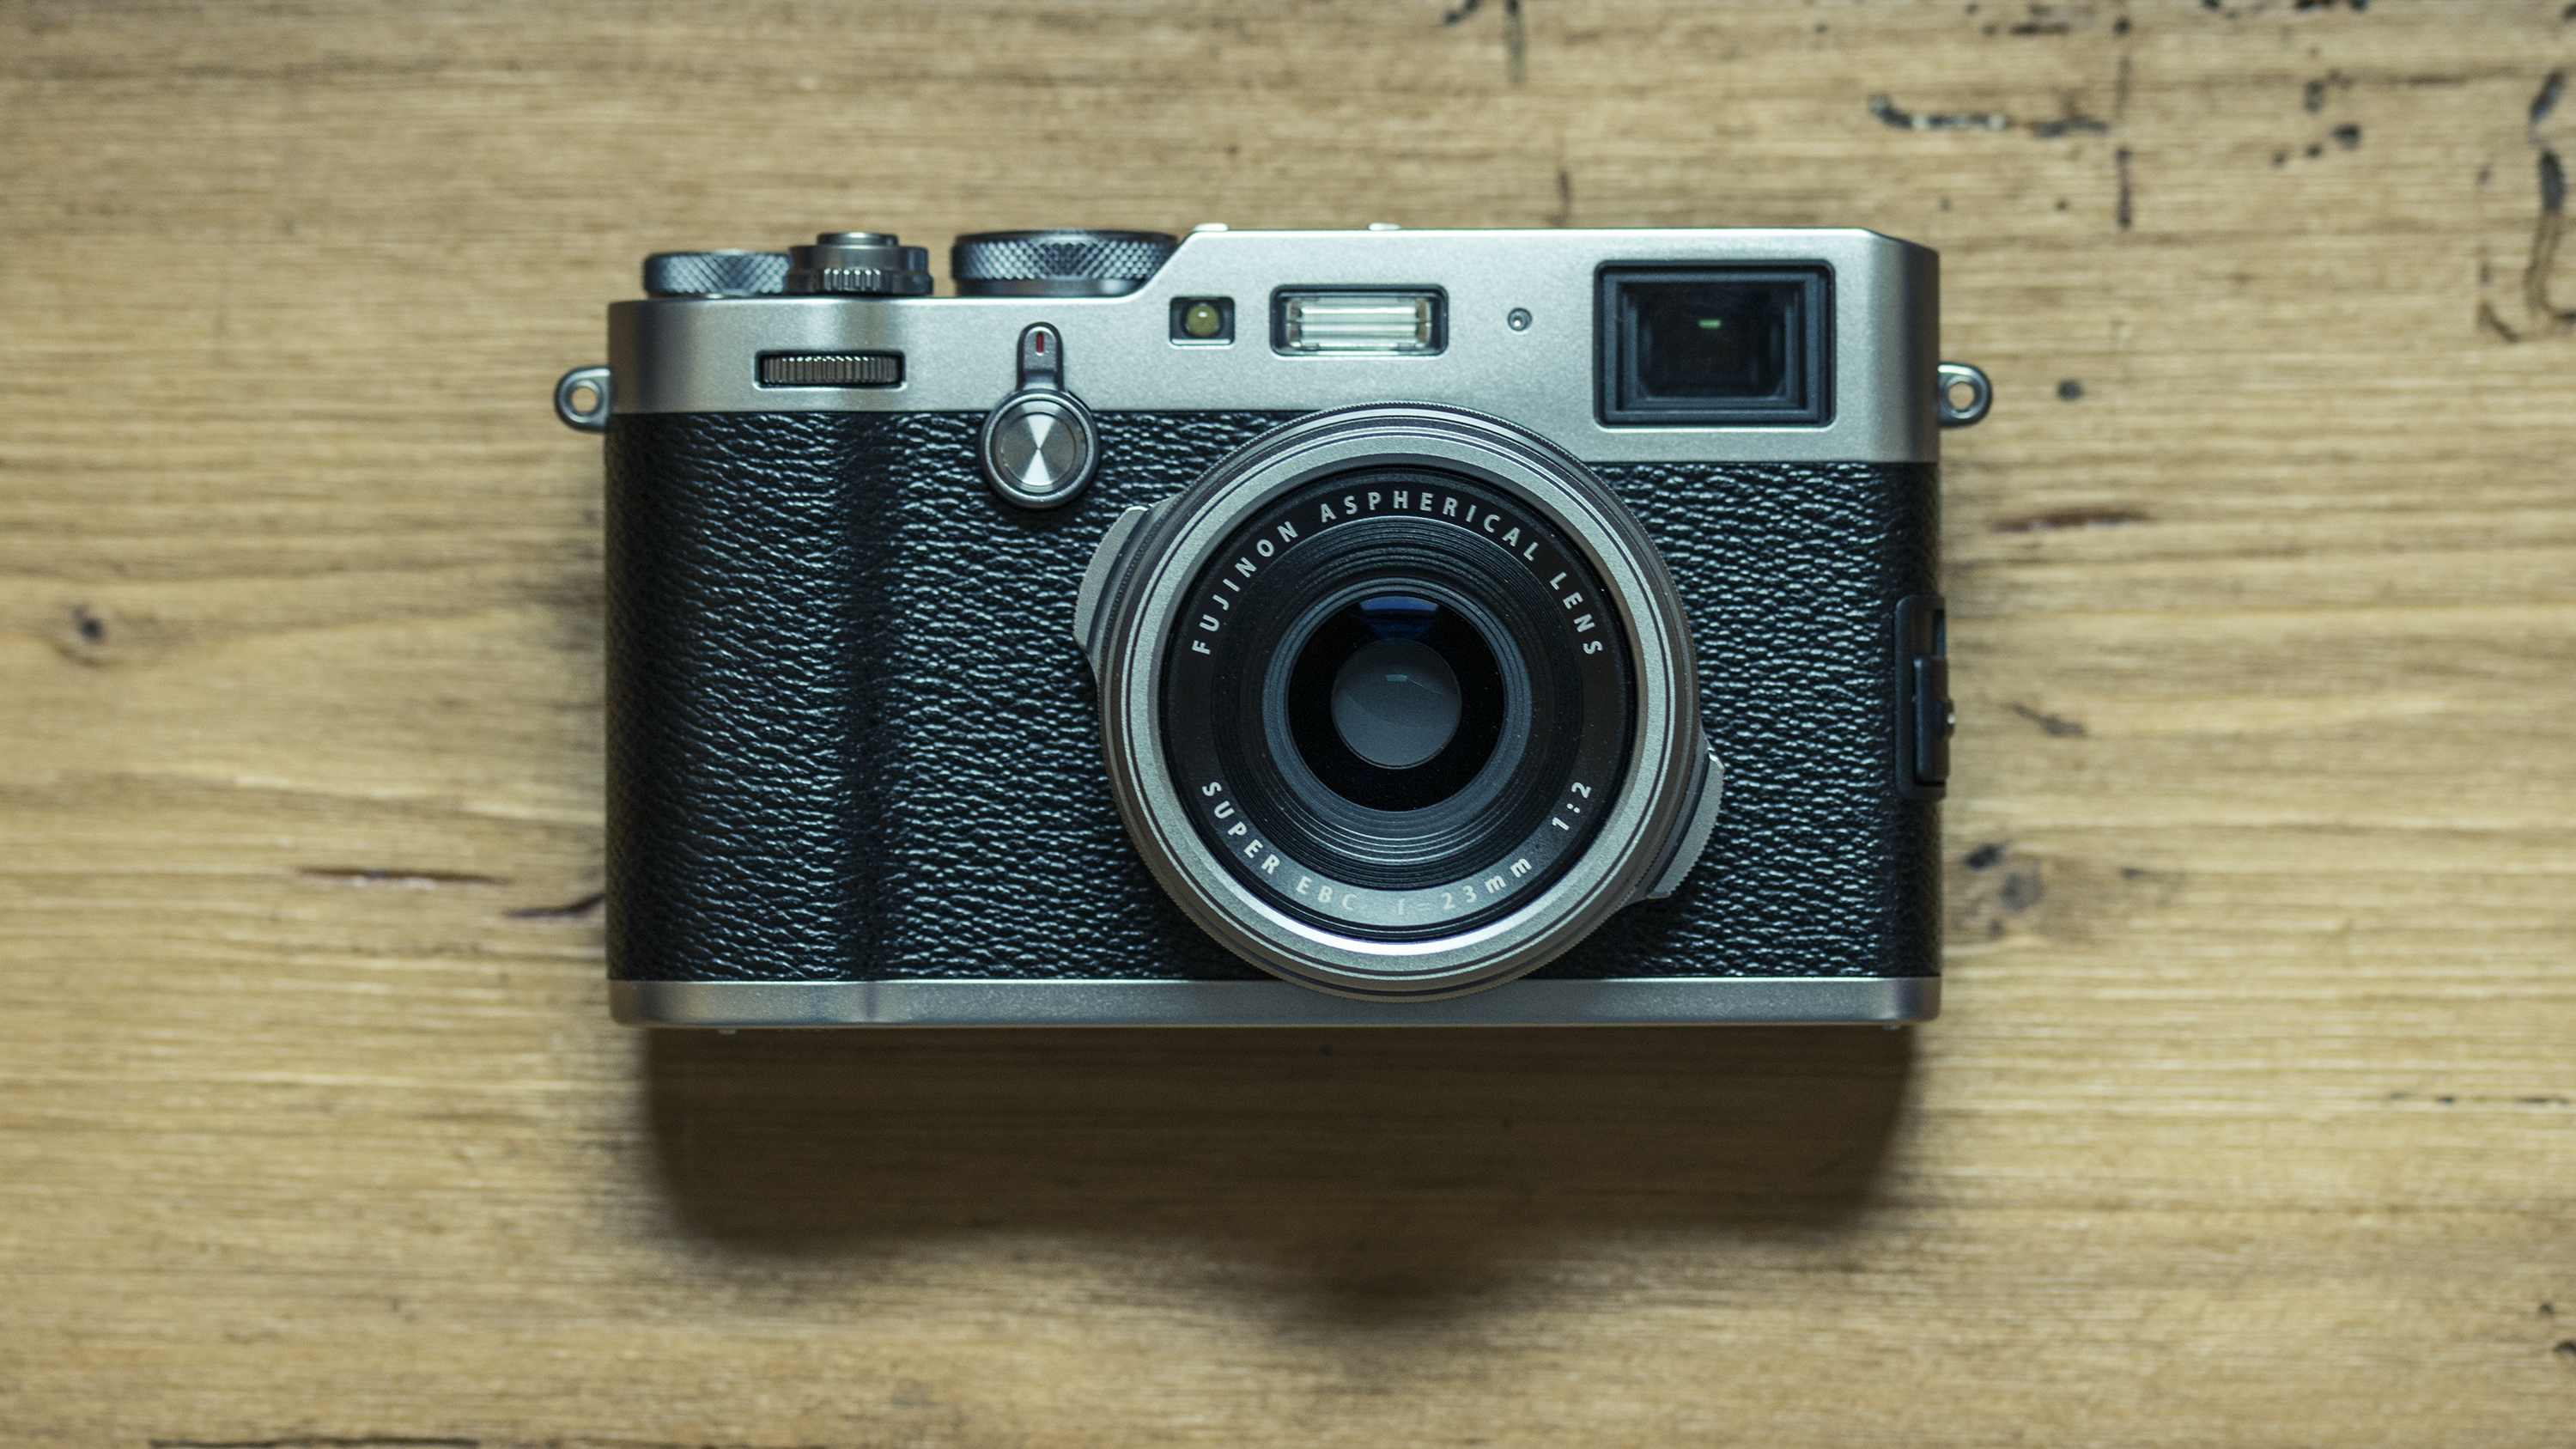 Best camera: Fujifilm X100F